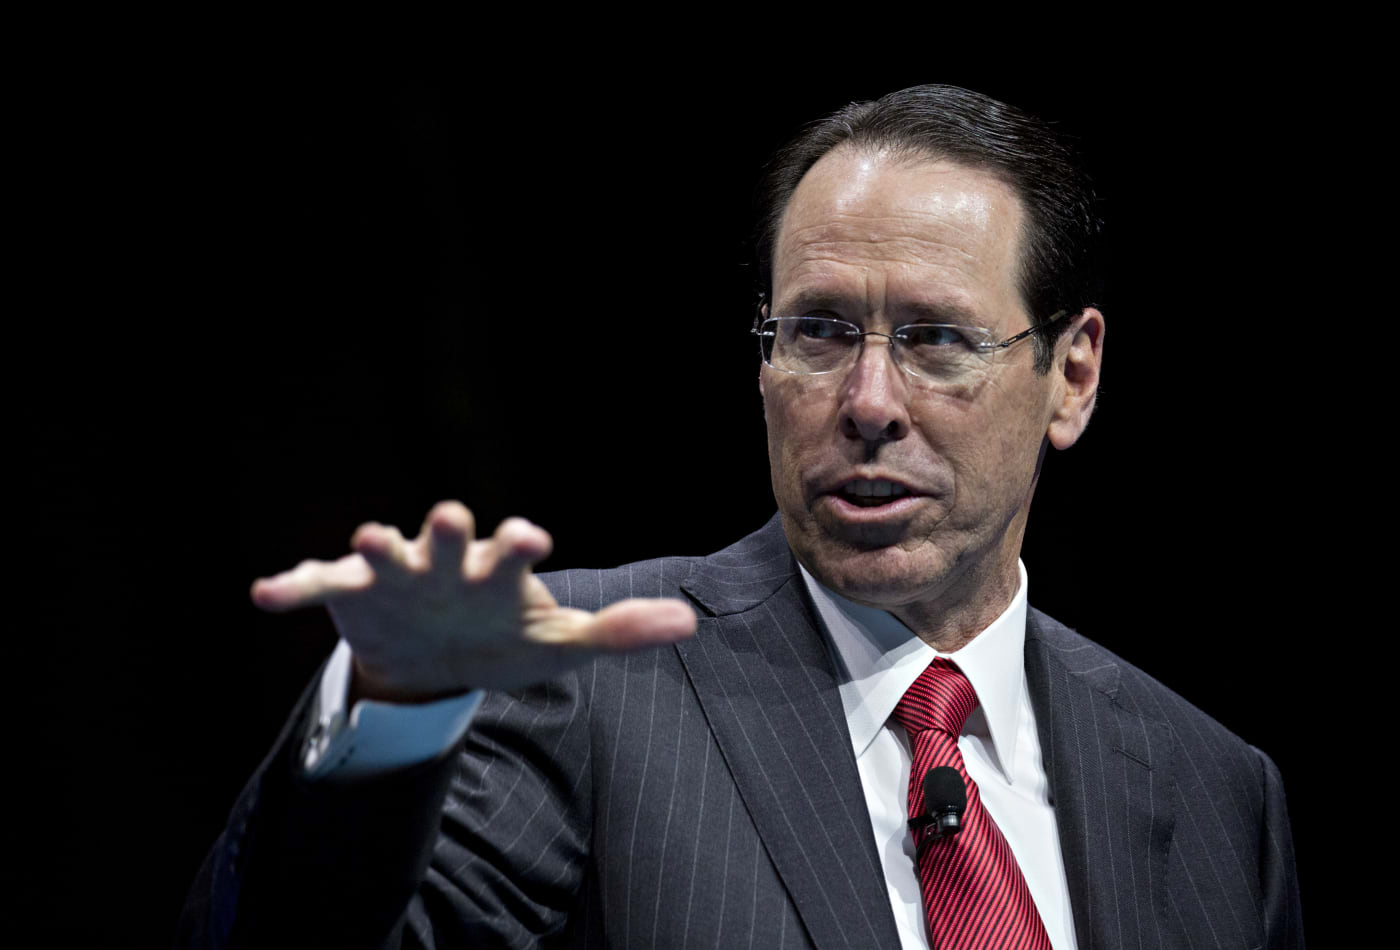 AT&T CEO Randall Stephenson is officially under fire for questionable M&A decisions